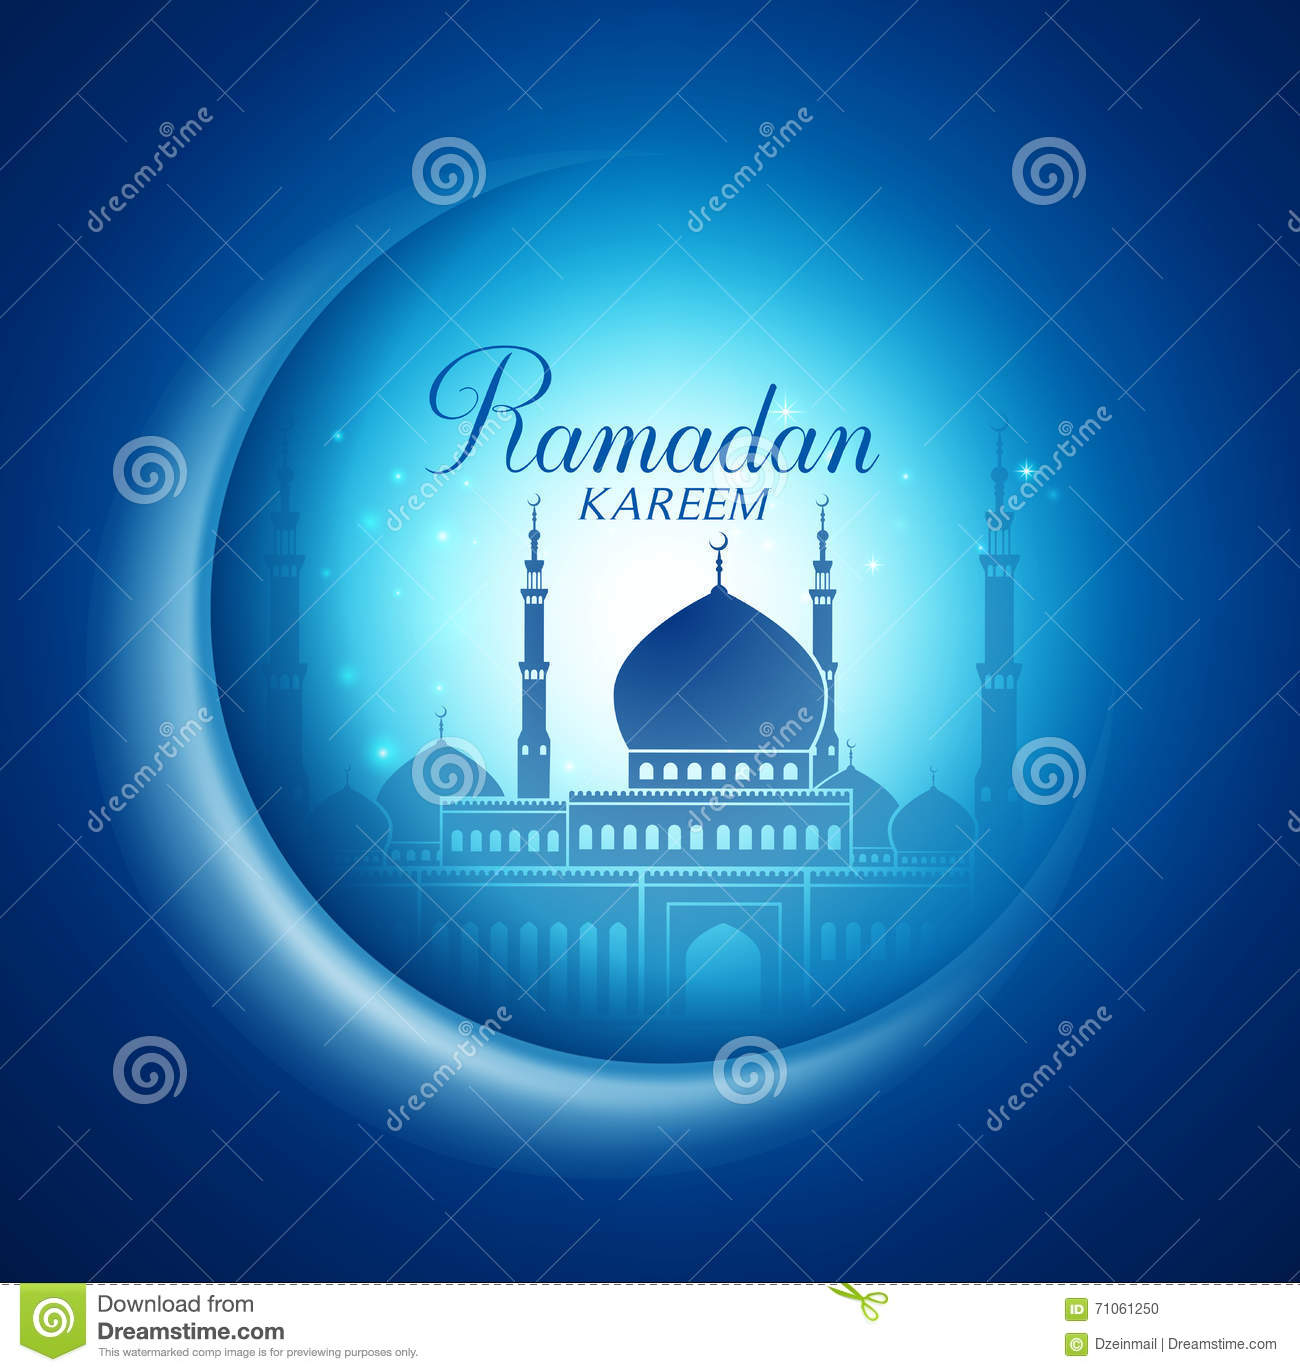 Mosque background for ramadan kareem stock photography image - Vector Moon And Mosque Lightning In Dark Background With Ramadan Kareem Stock Vector